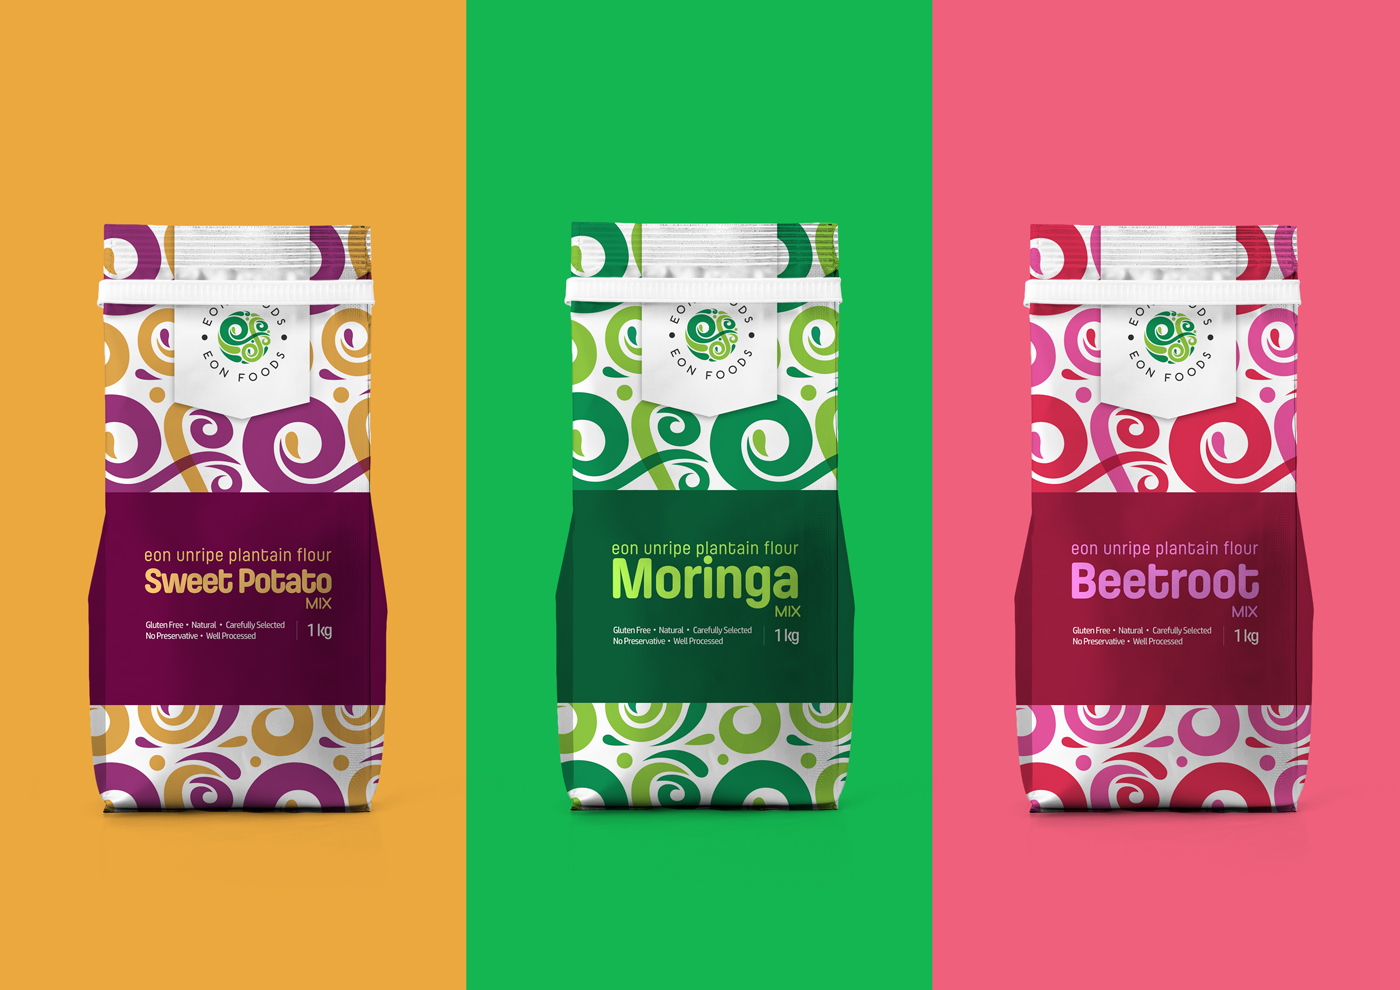 EON Foods Packaging - 3 Variants on Coloured Backgrounds